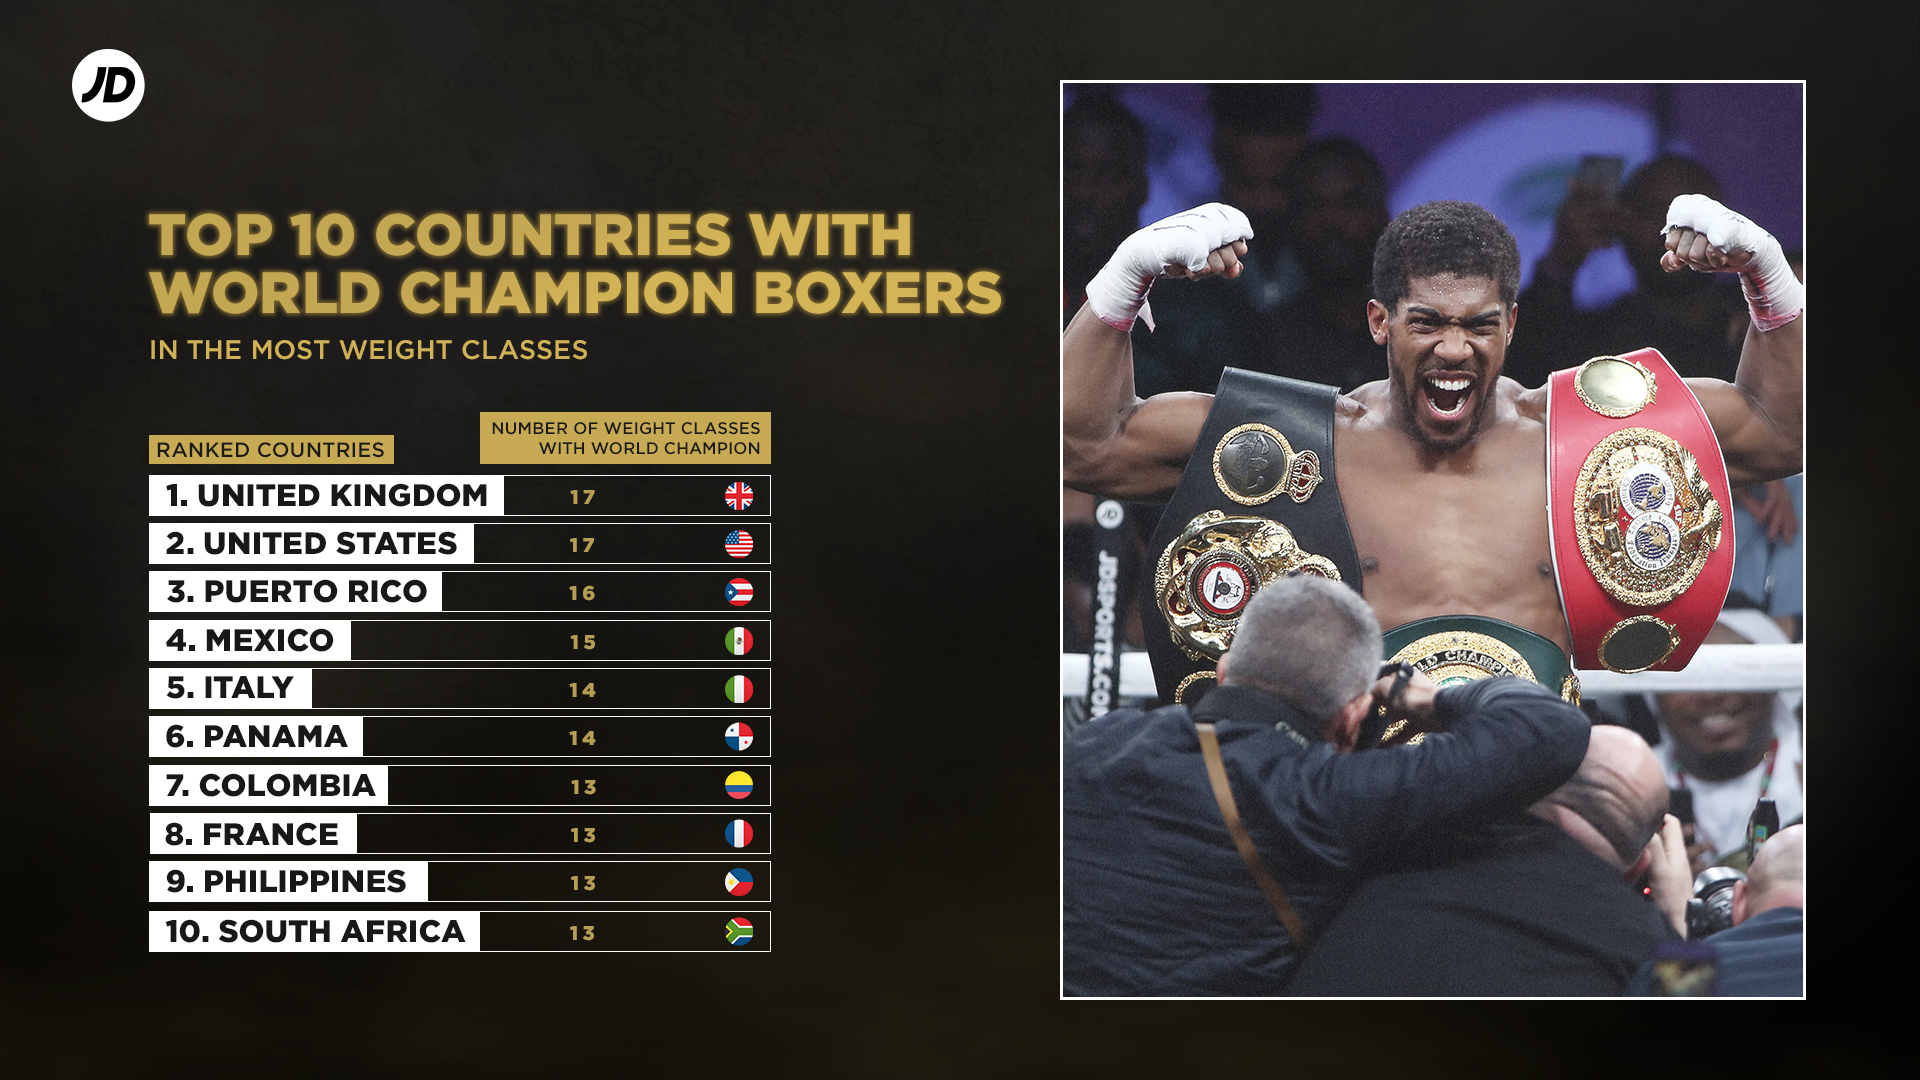 Top 10 countries with world champion boxers in the most weight classes